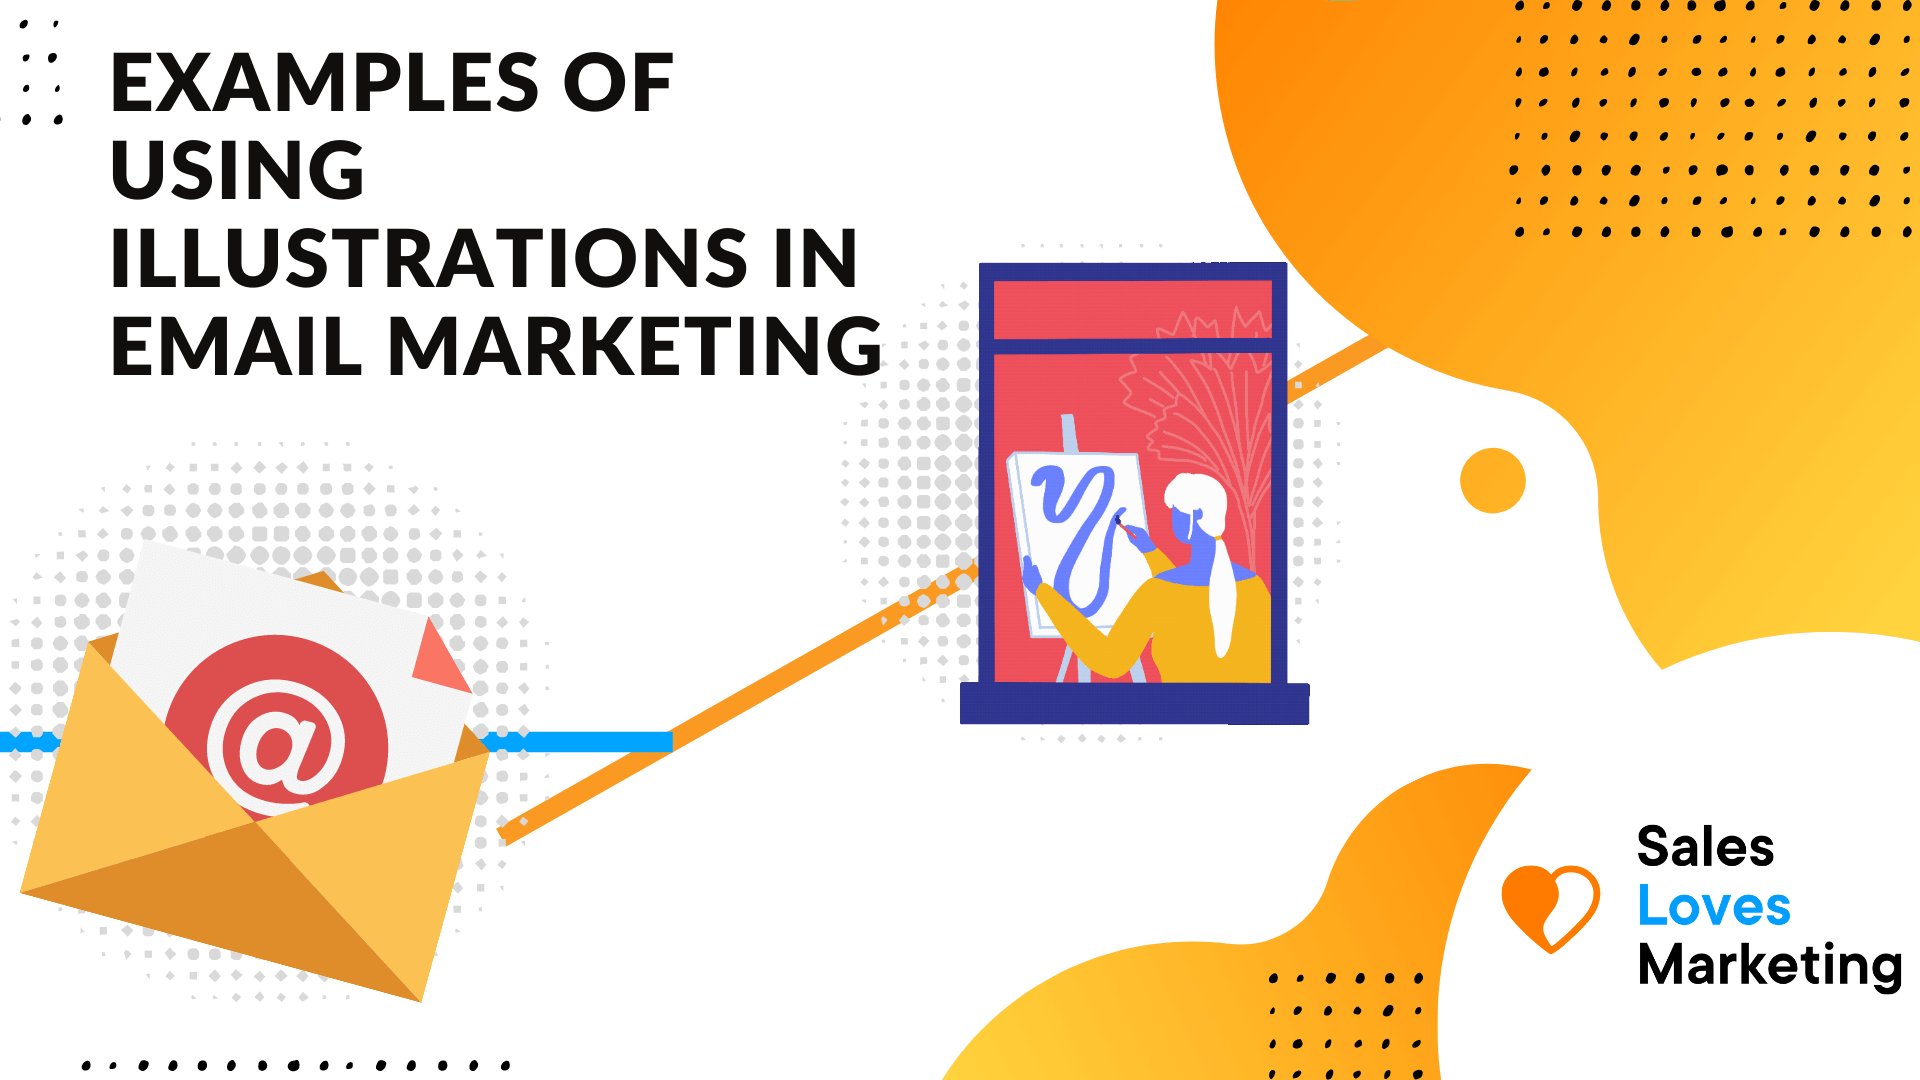 Start using illustrations in your email marketing to increase your conversions.